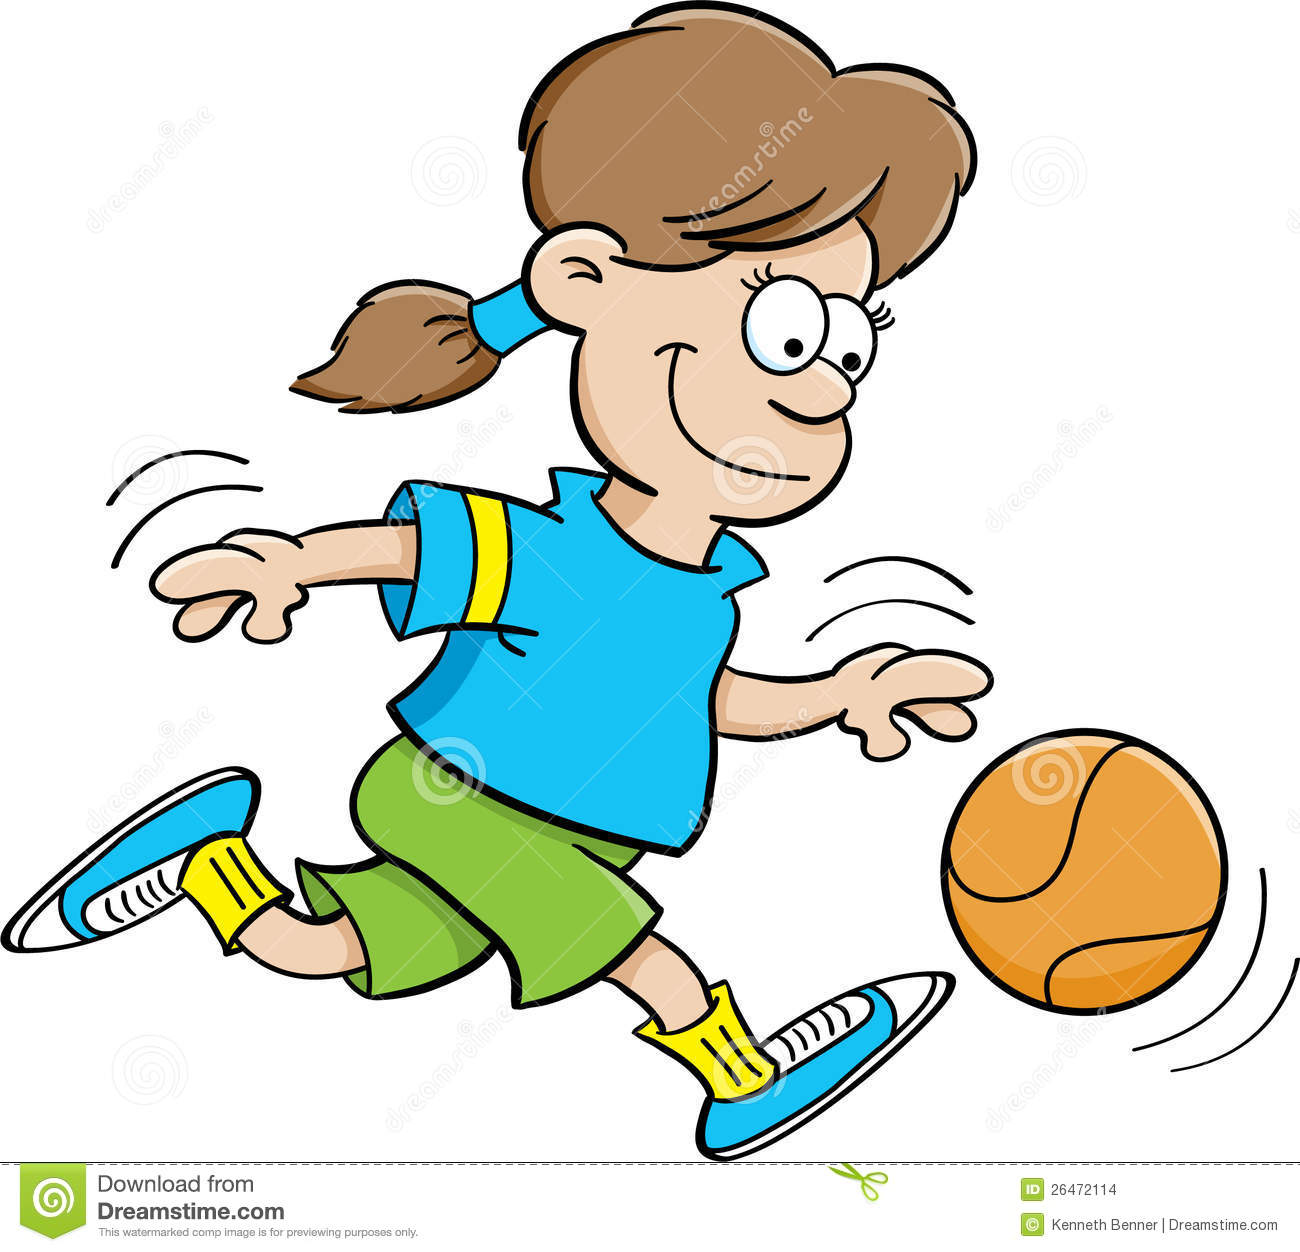 Dribbling basketball clipart.